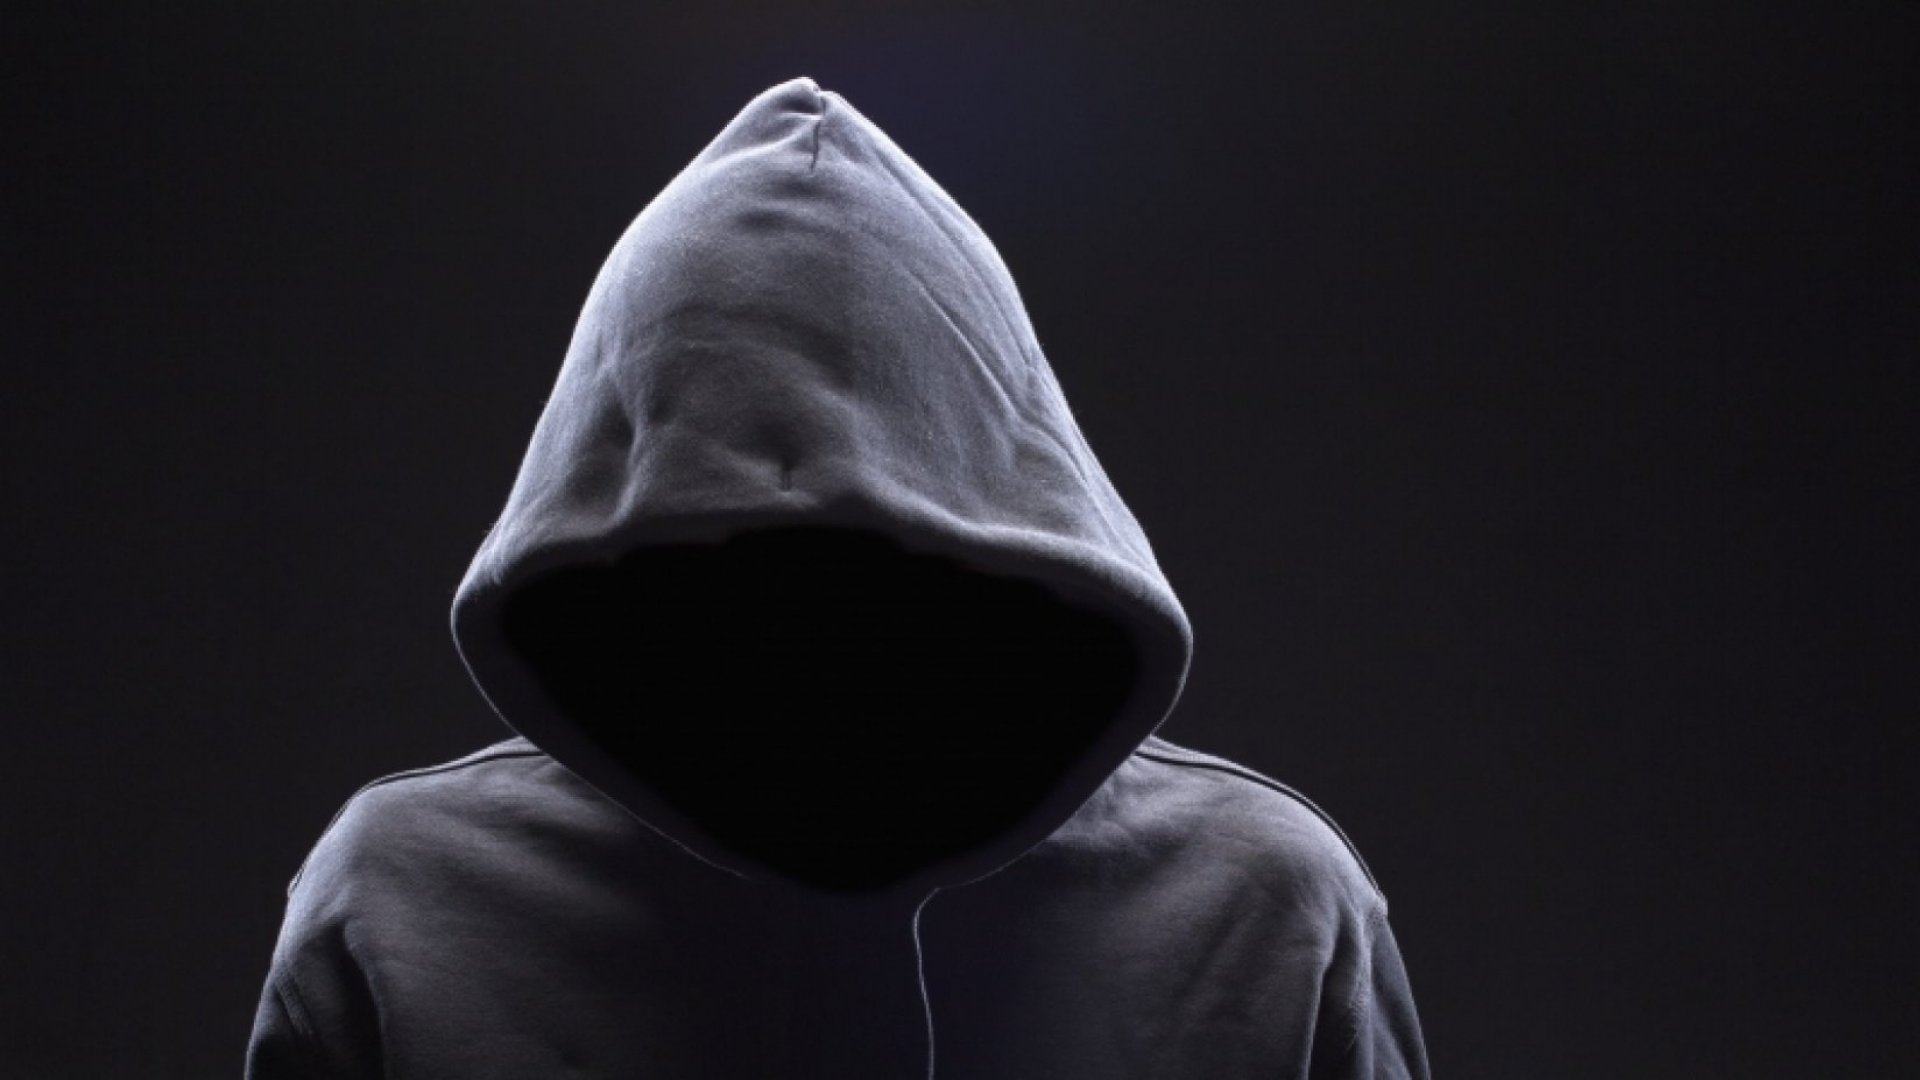 Hoodies and Laptop Stickers: The Meaning Behind the Tech Entrepreneur Look